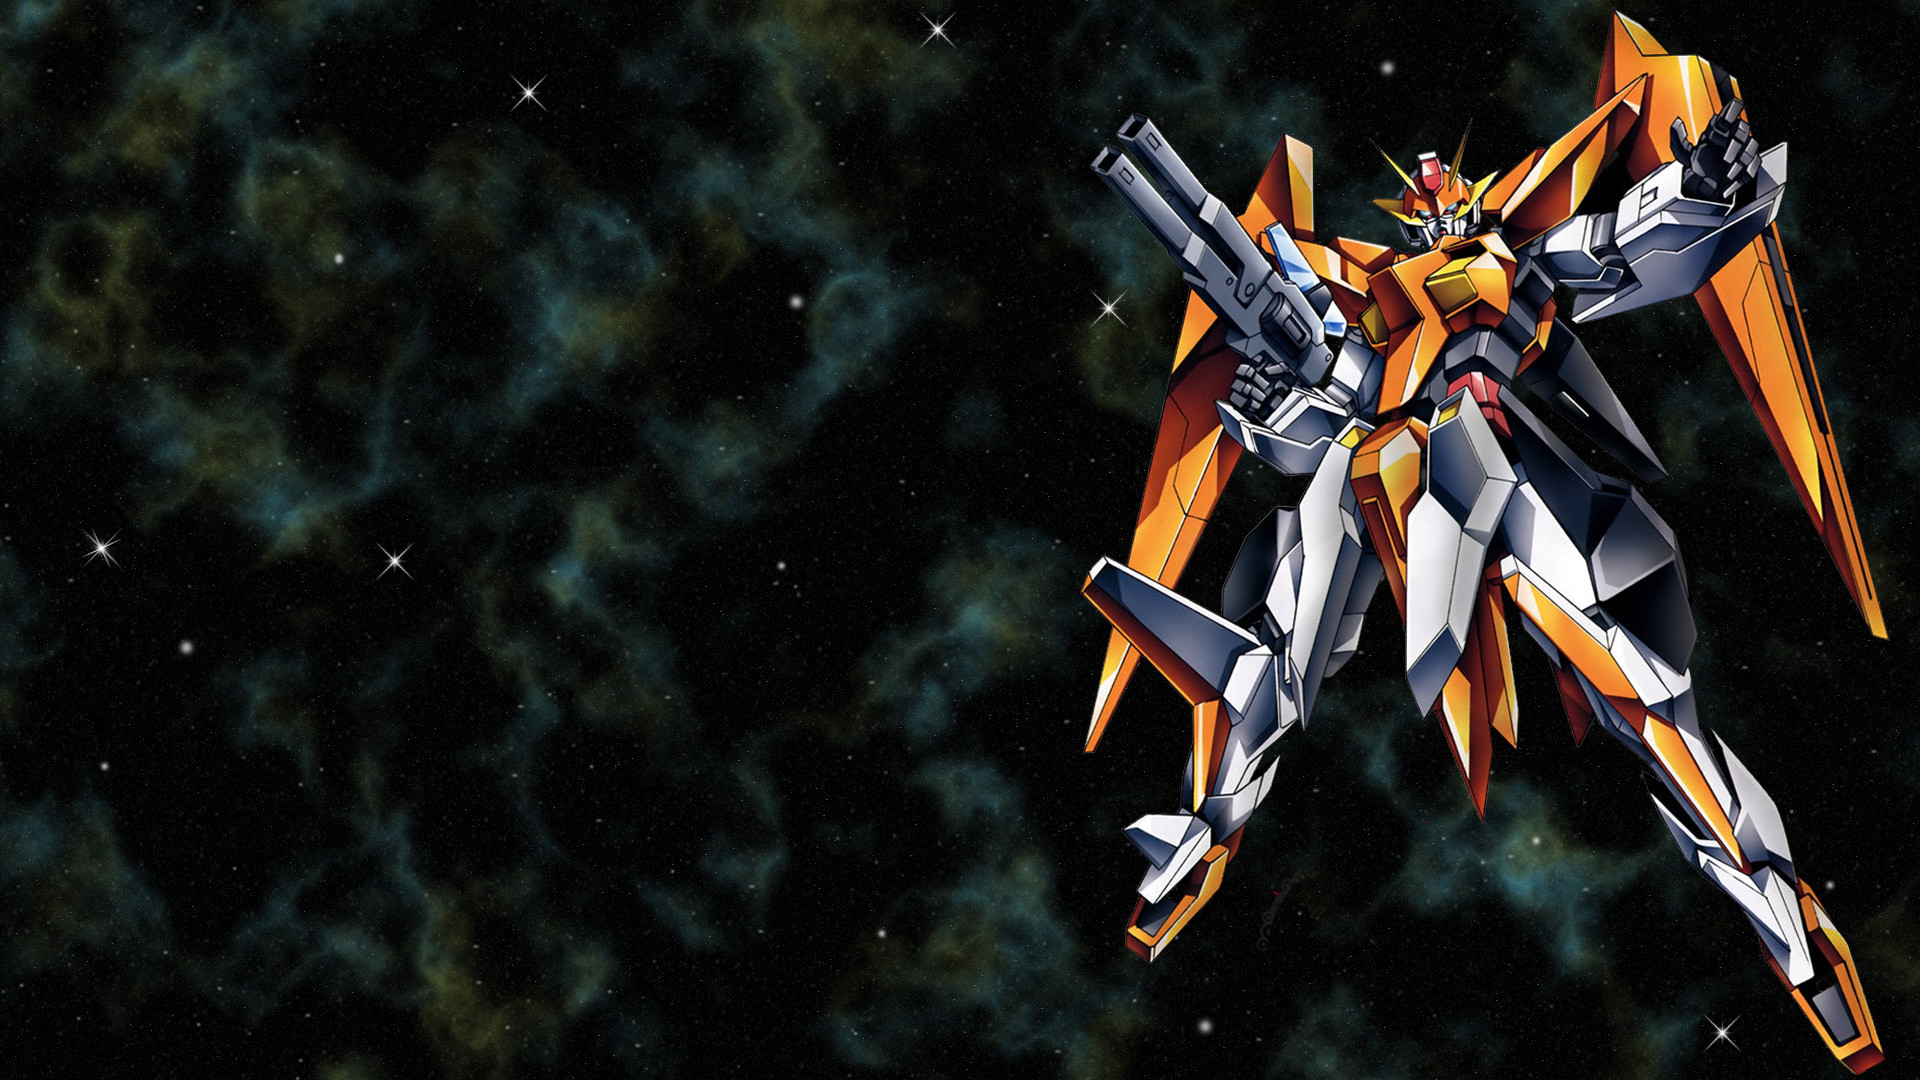 Gundam Wallpapers 67 Pictures